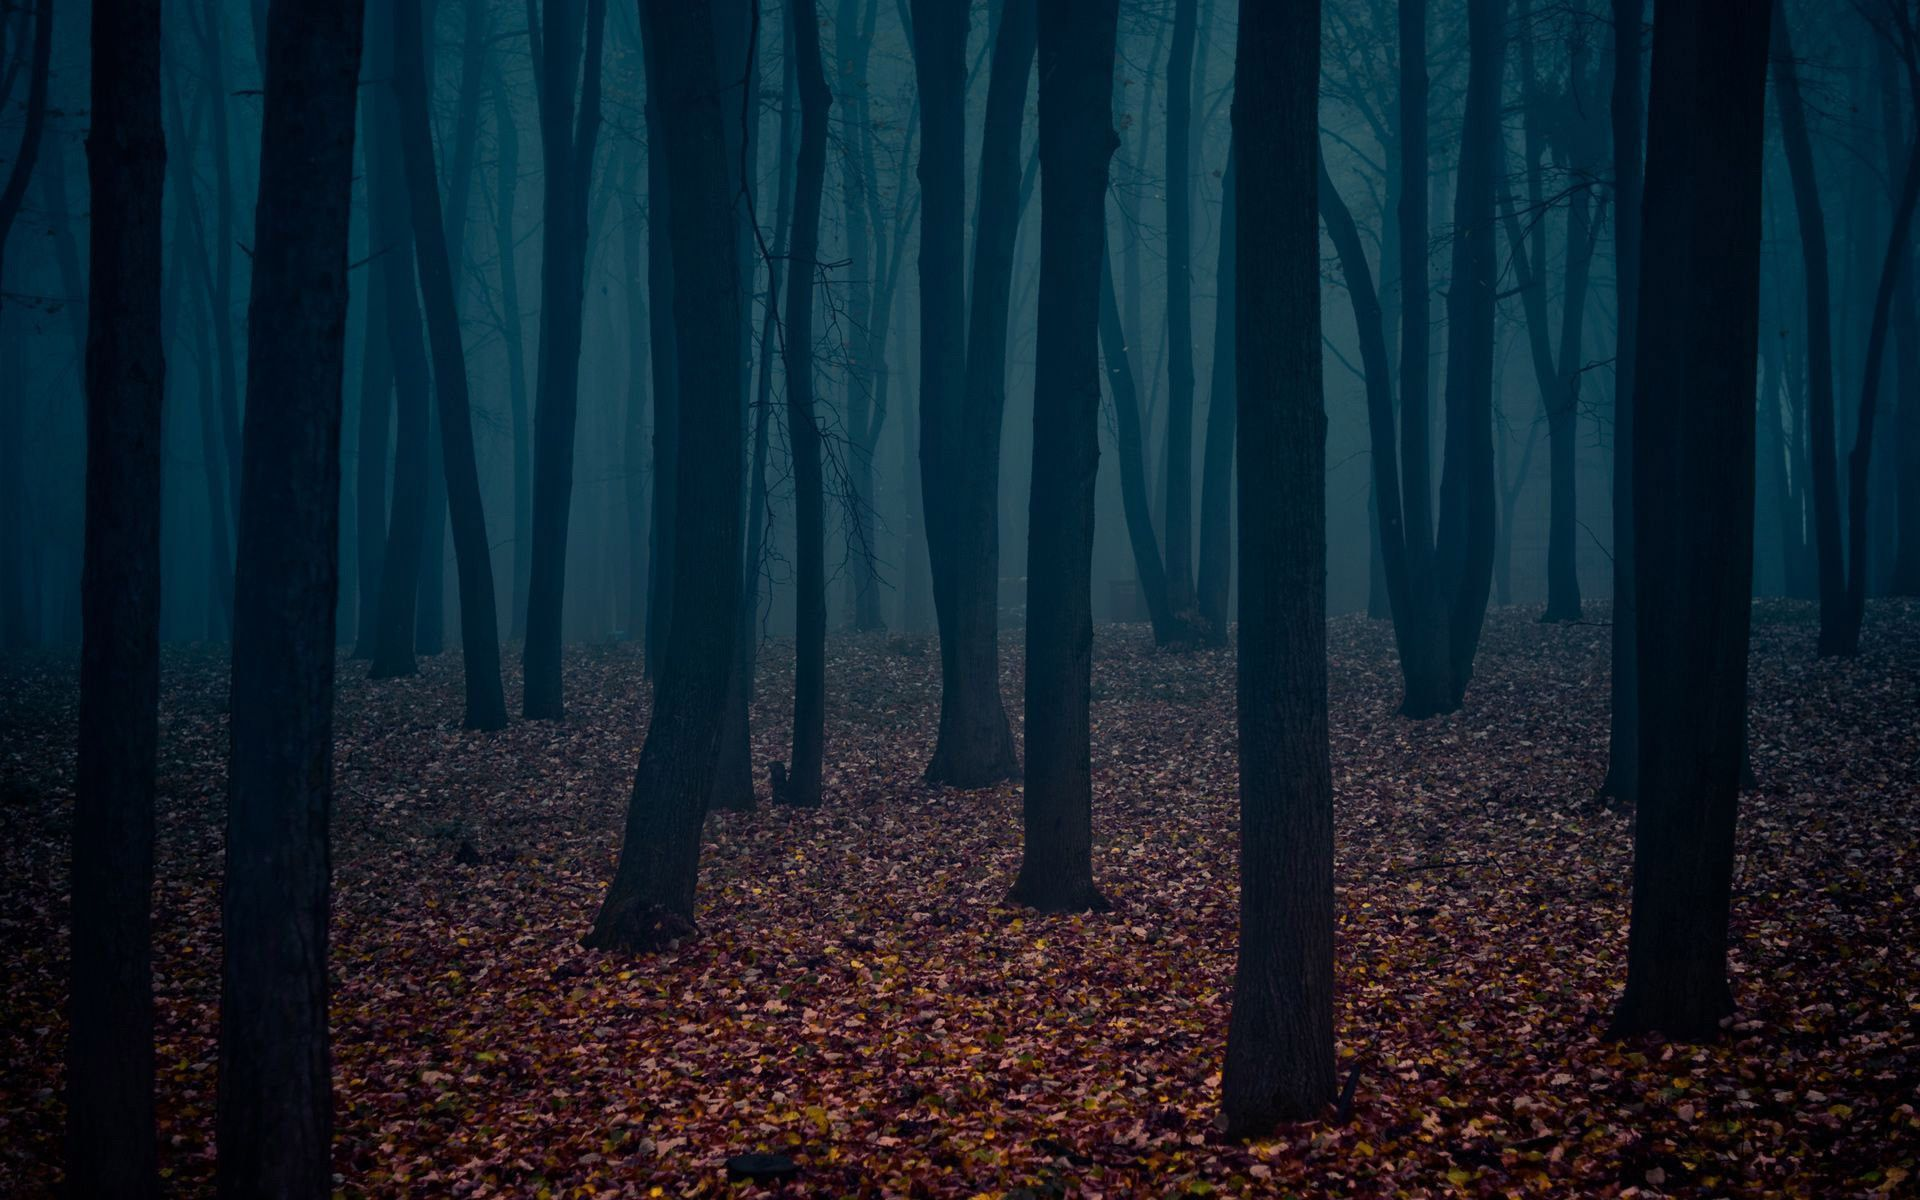 Dark Forest Wallpaper High Quality Resolution Free Download